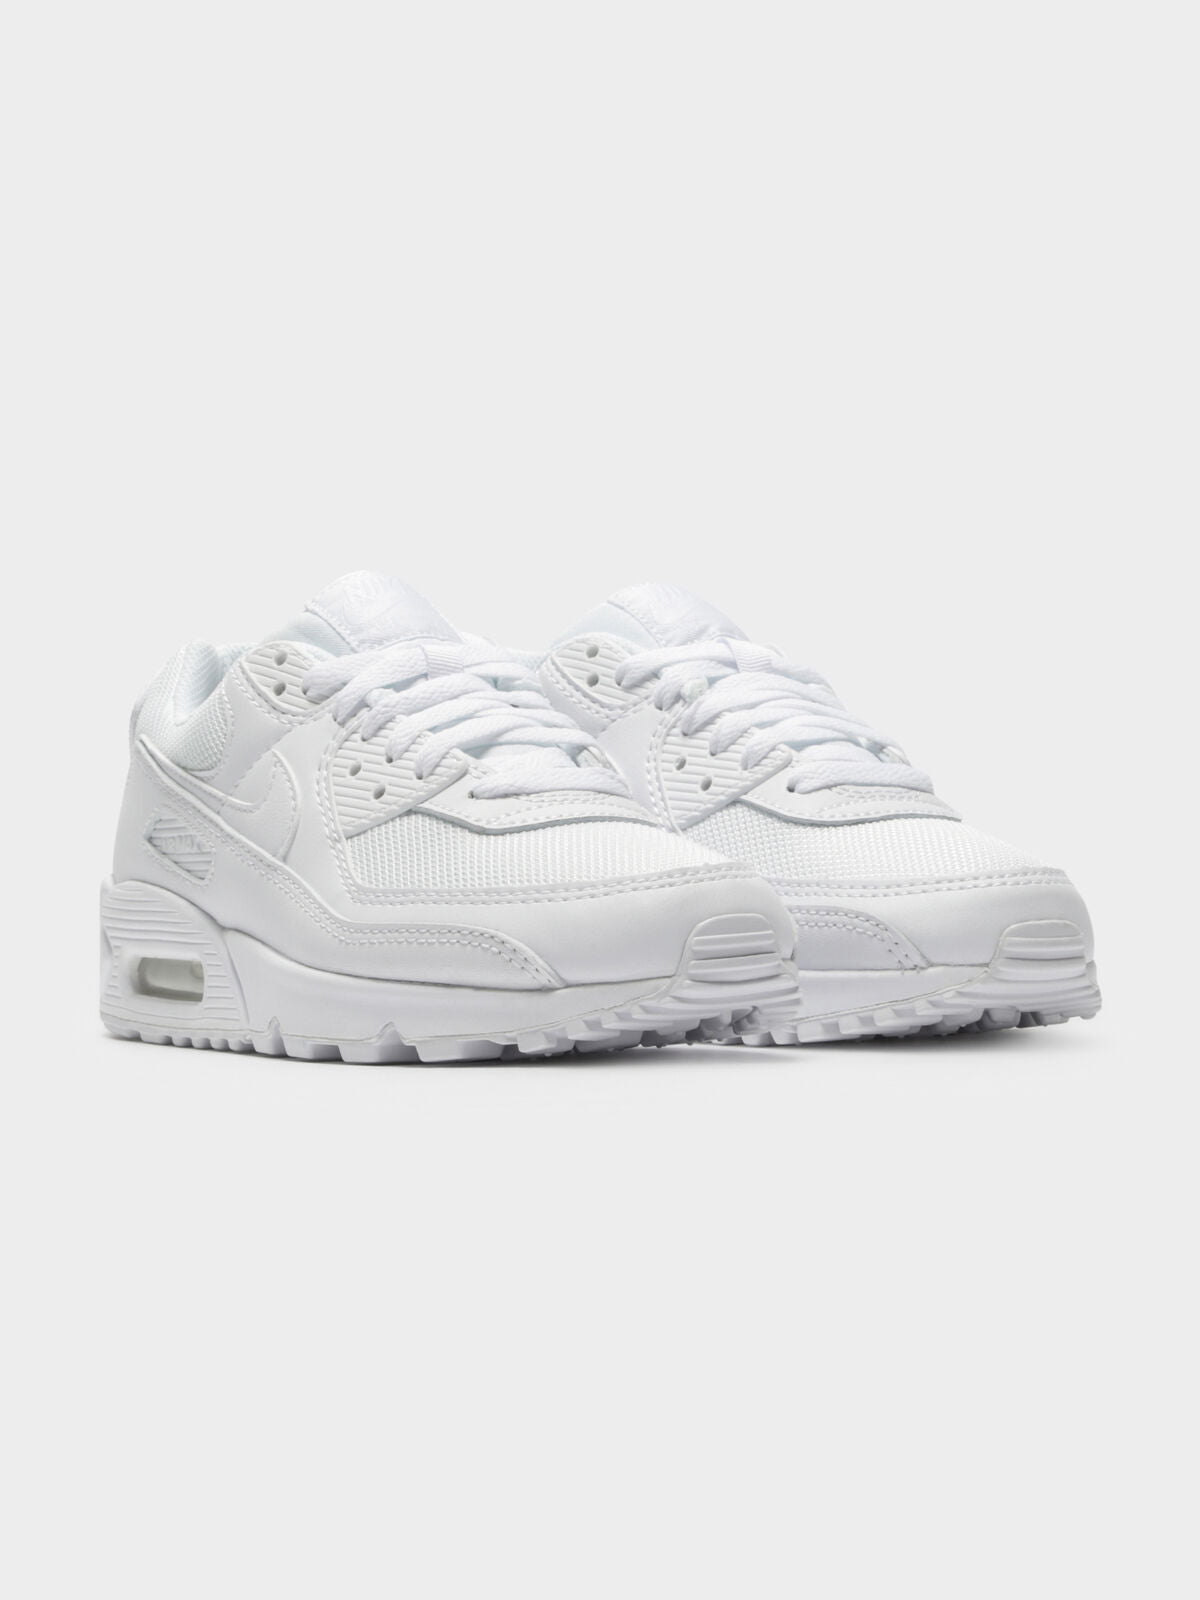 Womens Air Max 90 Sneakers in White